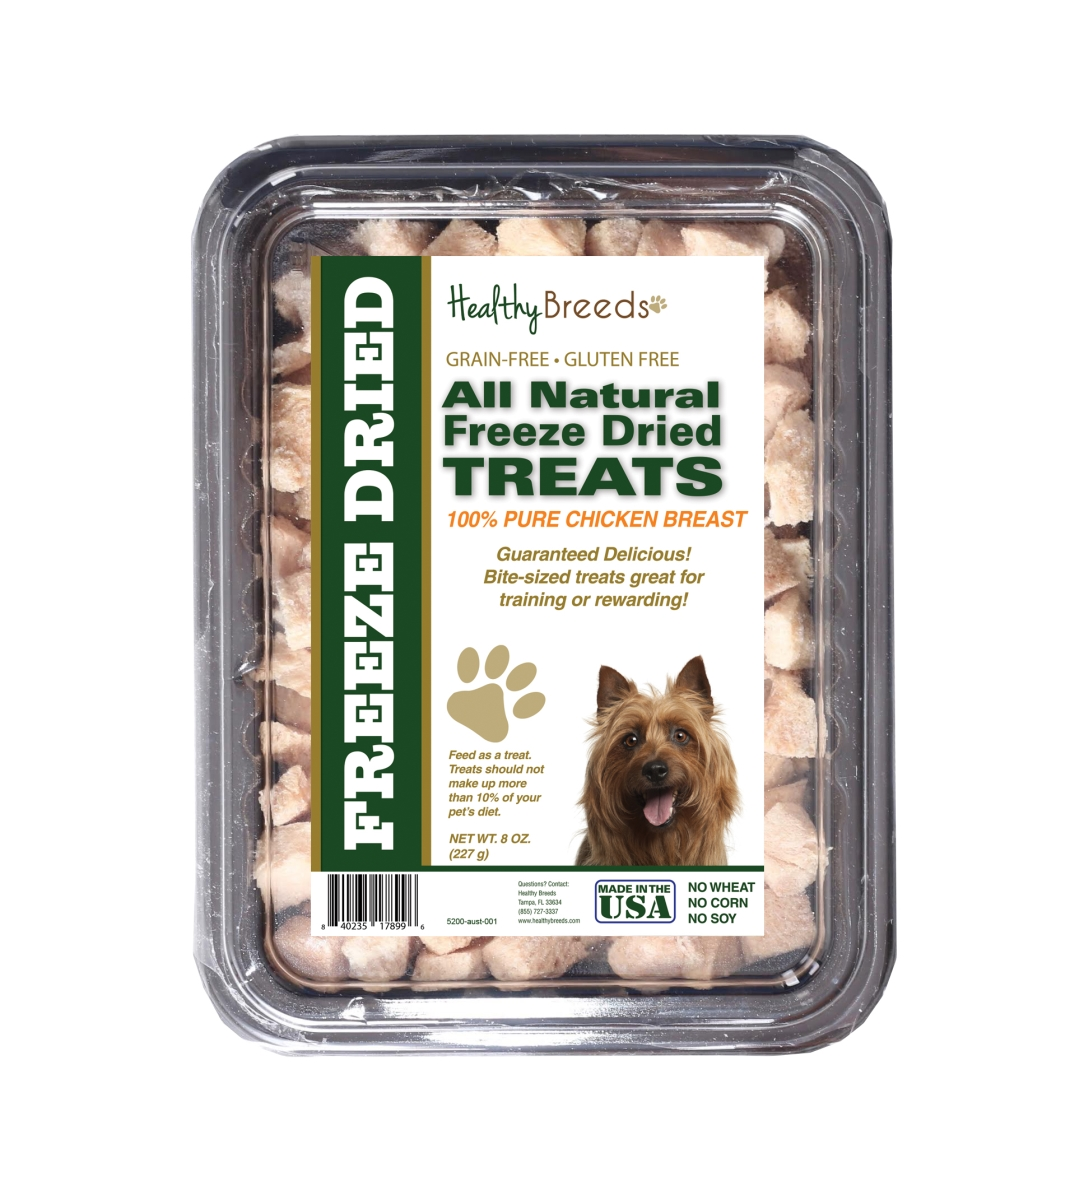 Healthy Breeds 840235178996 8 oz Australian Terrier All Natural Freeze Dried Treats Chicken Breast